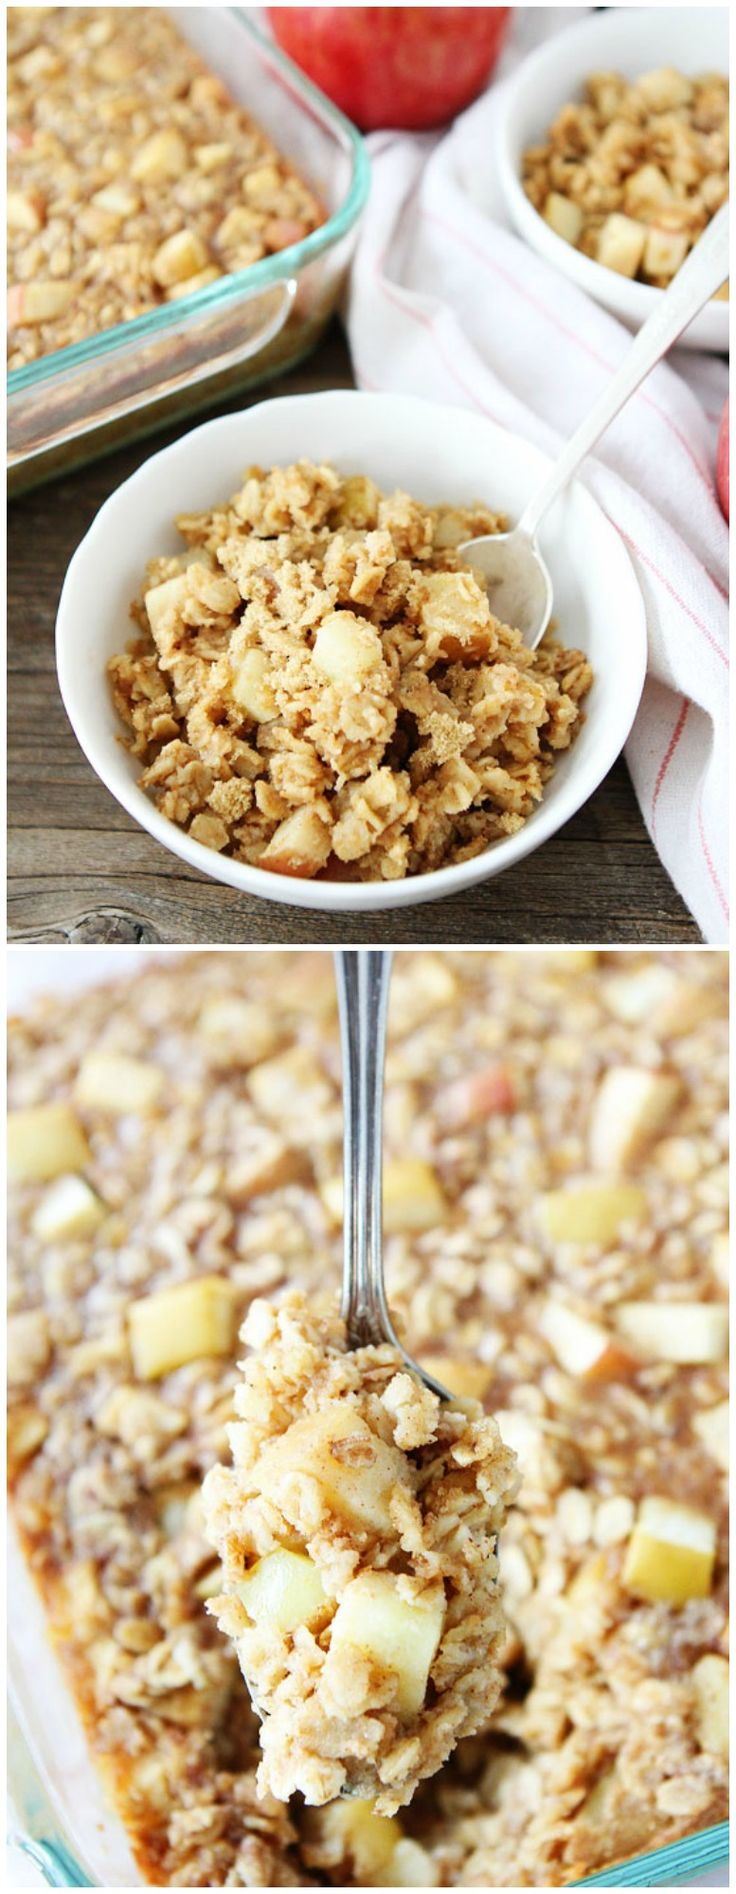 Baked Peanut Butter Apple Oatmeal Recipe on twopeasandtheirpod.com Love this easy baked oatmeal and it reheats well too! Make a pan and eat all week!